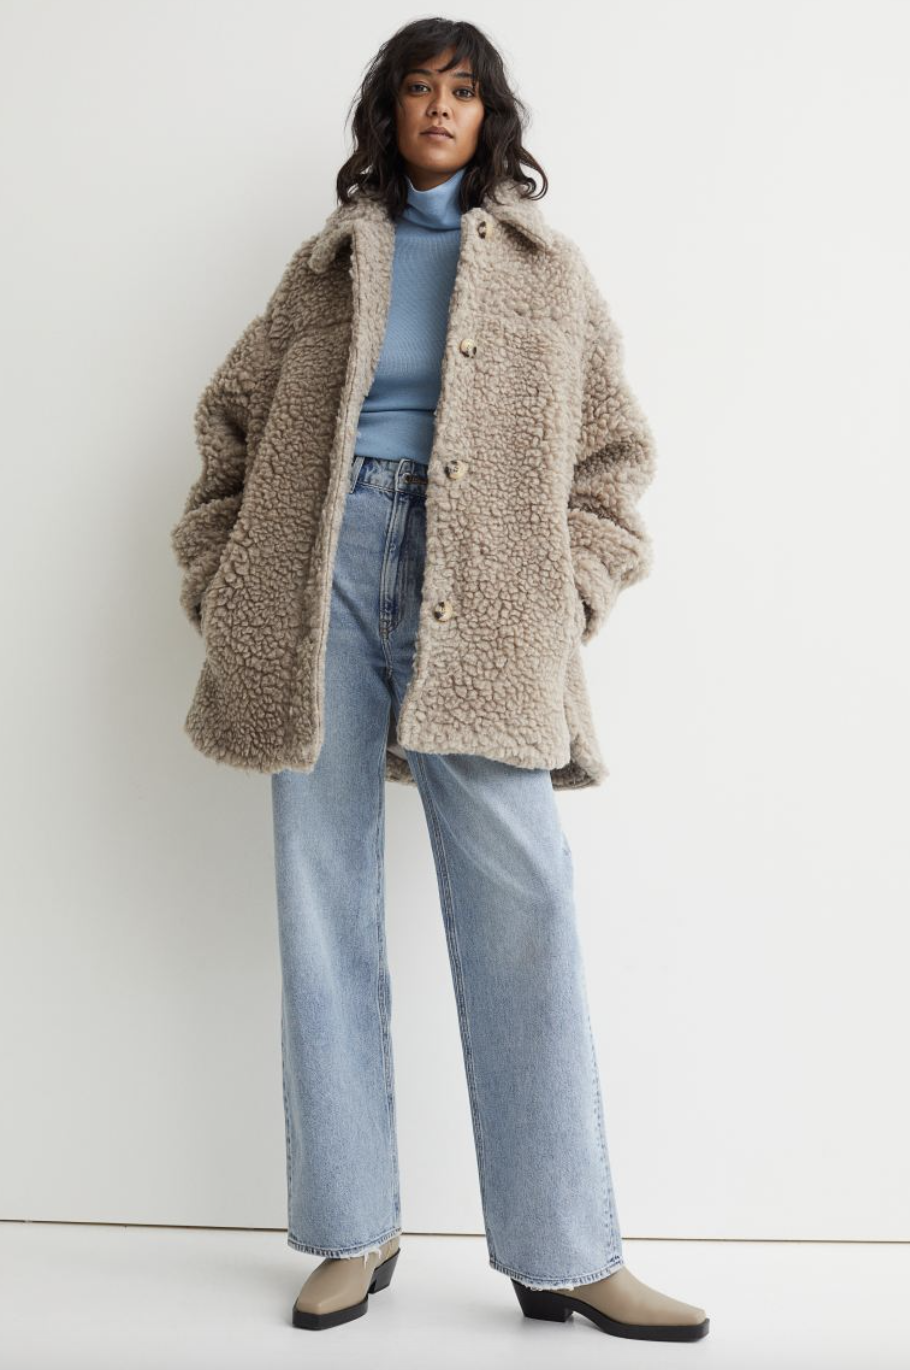 model with black hair posing in beige Faux Shearling Shirt Jacket and jeans